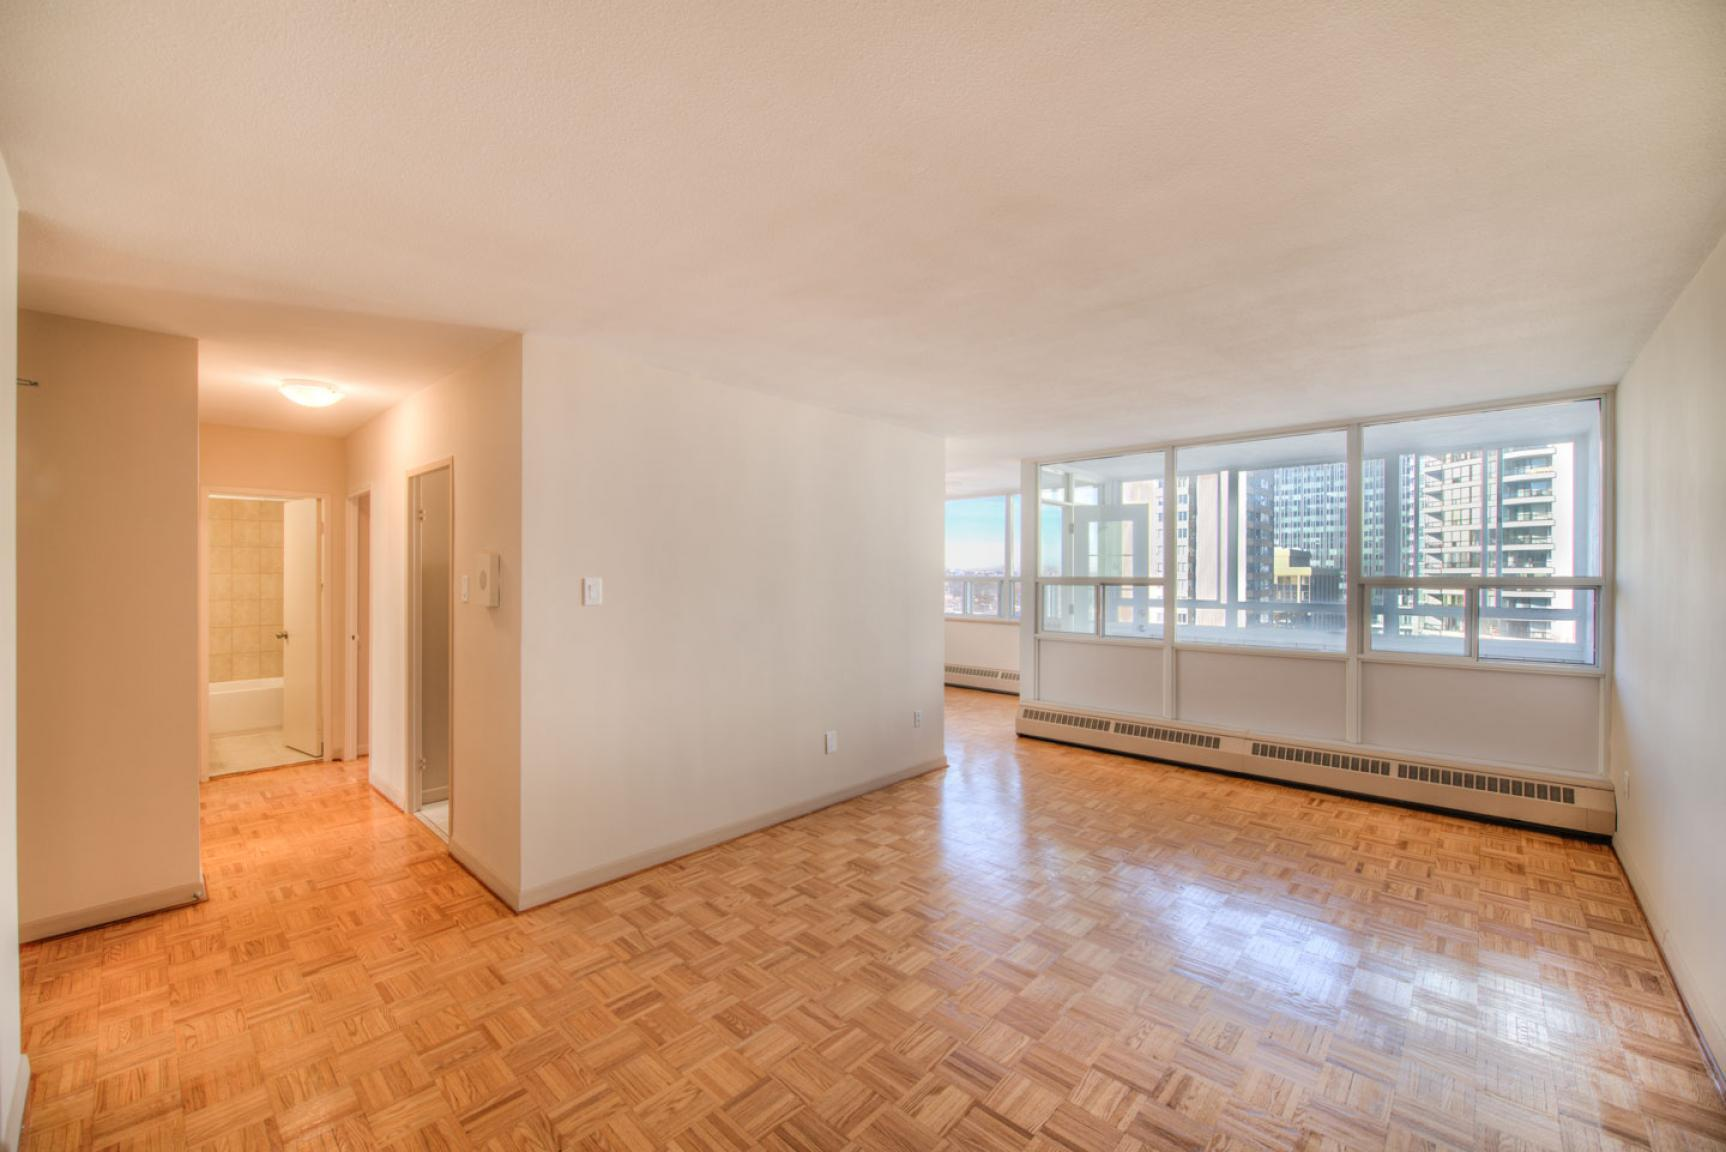 Bedroom Apartments For Rent Yonge And Eglinton